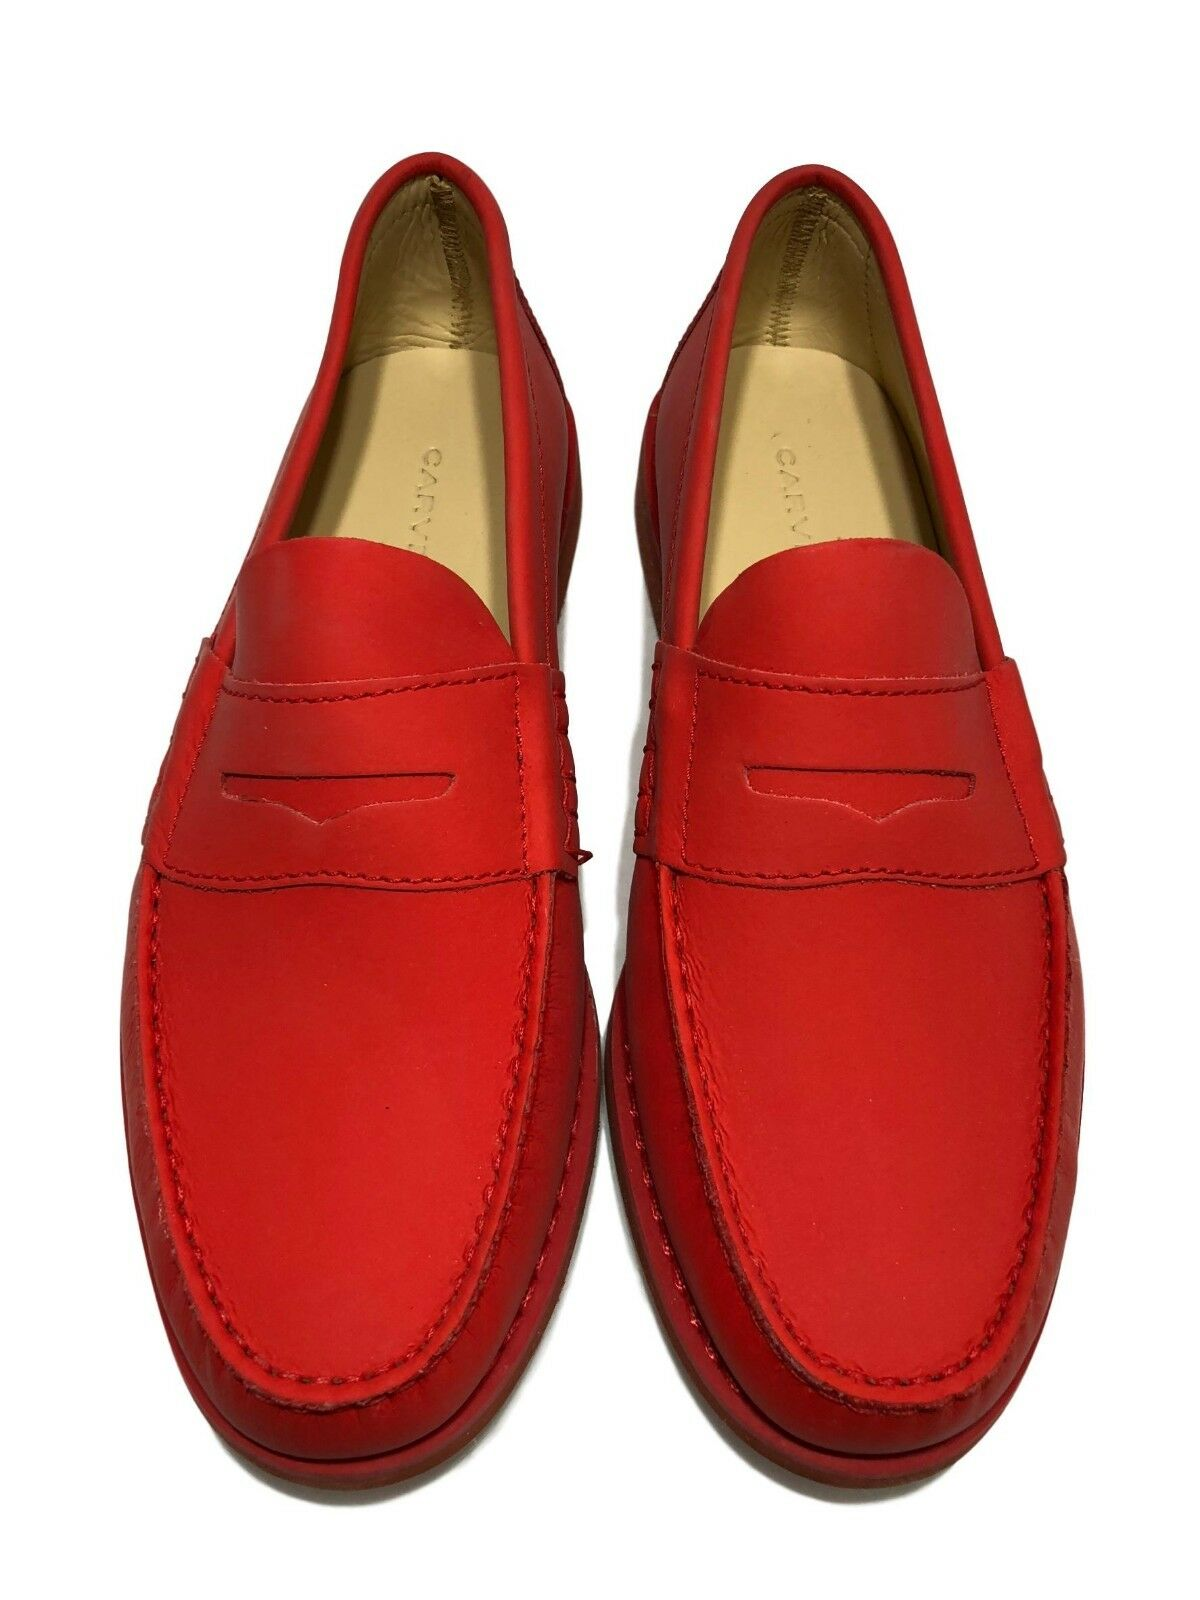 NEW, CARVEN MEN'S RED LEATHER LOAFERS, 42,